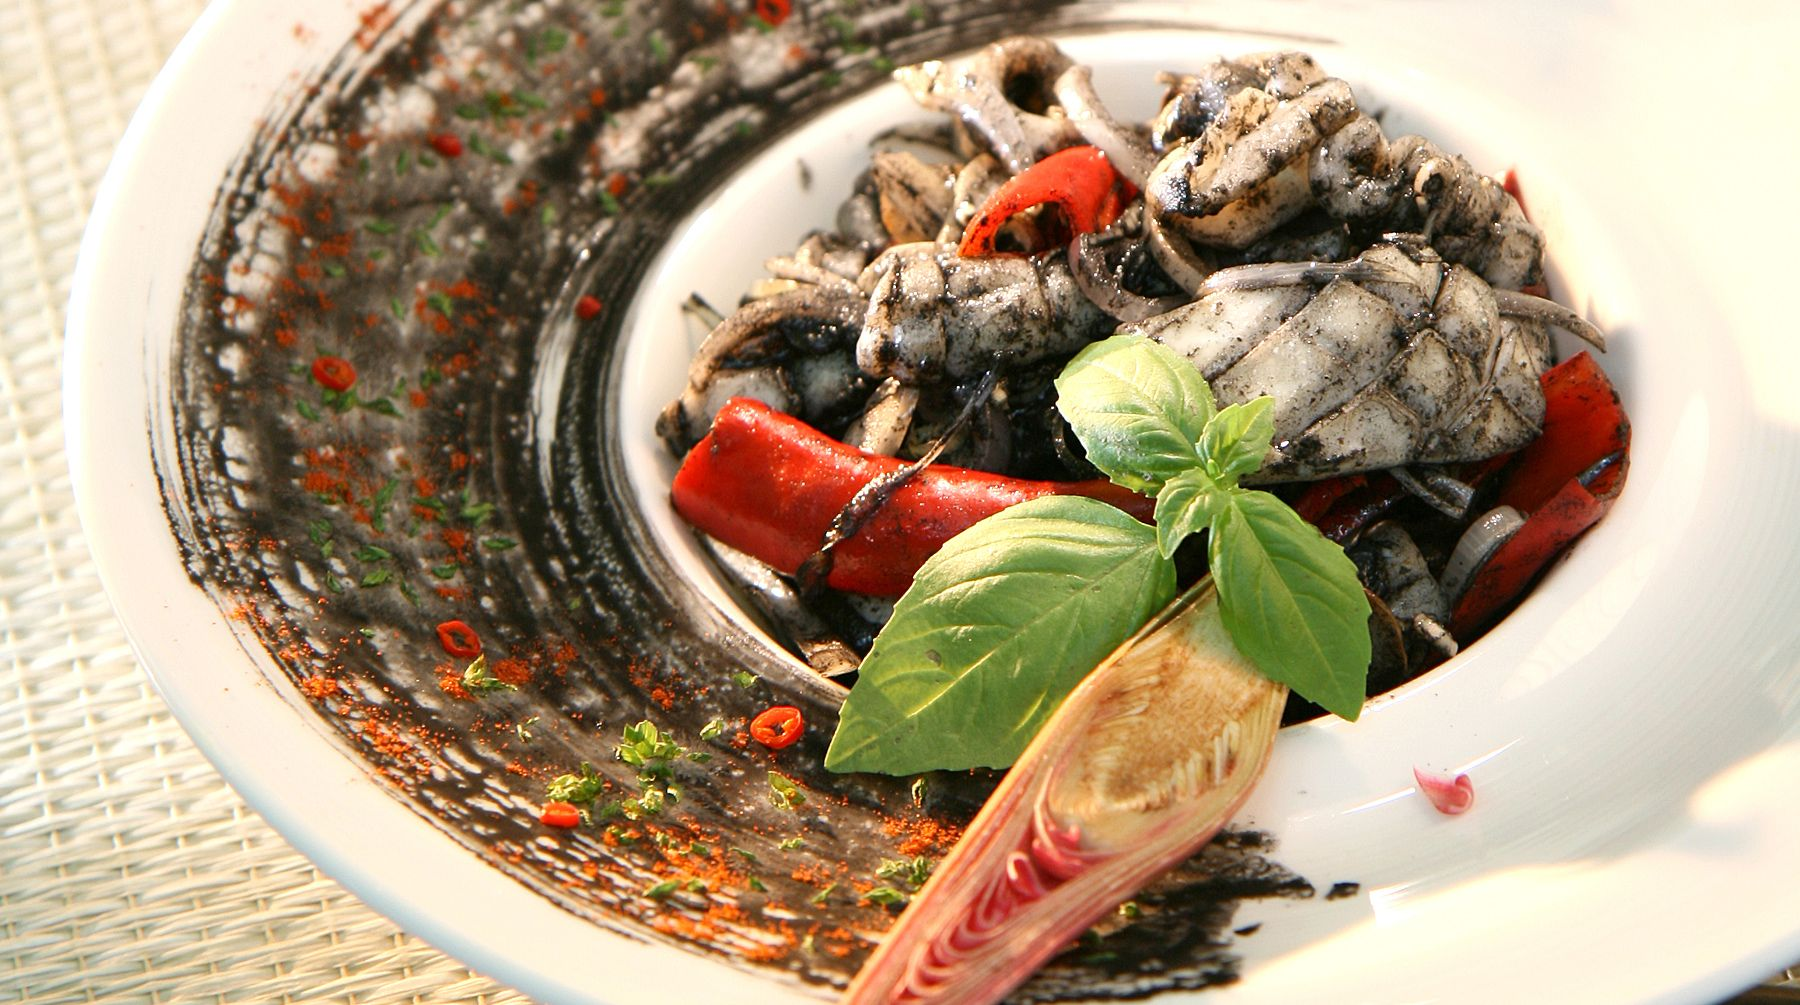 Recipe squid in black ink sotong masak hitam asian food channel recipe squid in black ink sotong masak hitam asian food channel forumfinder Image collections